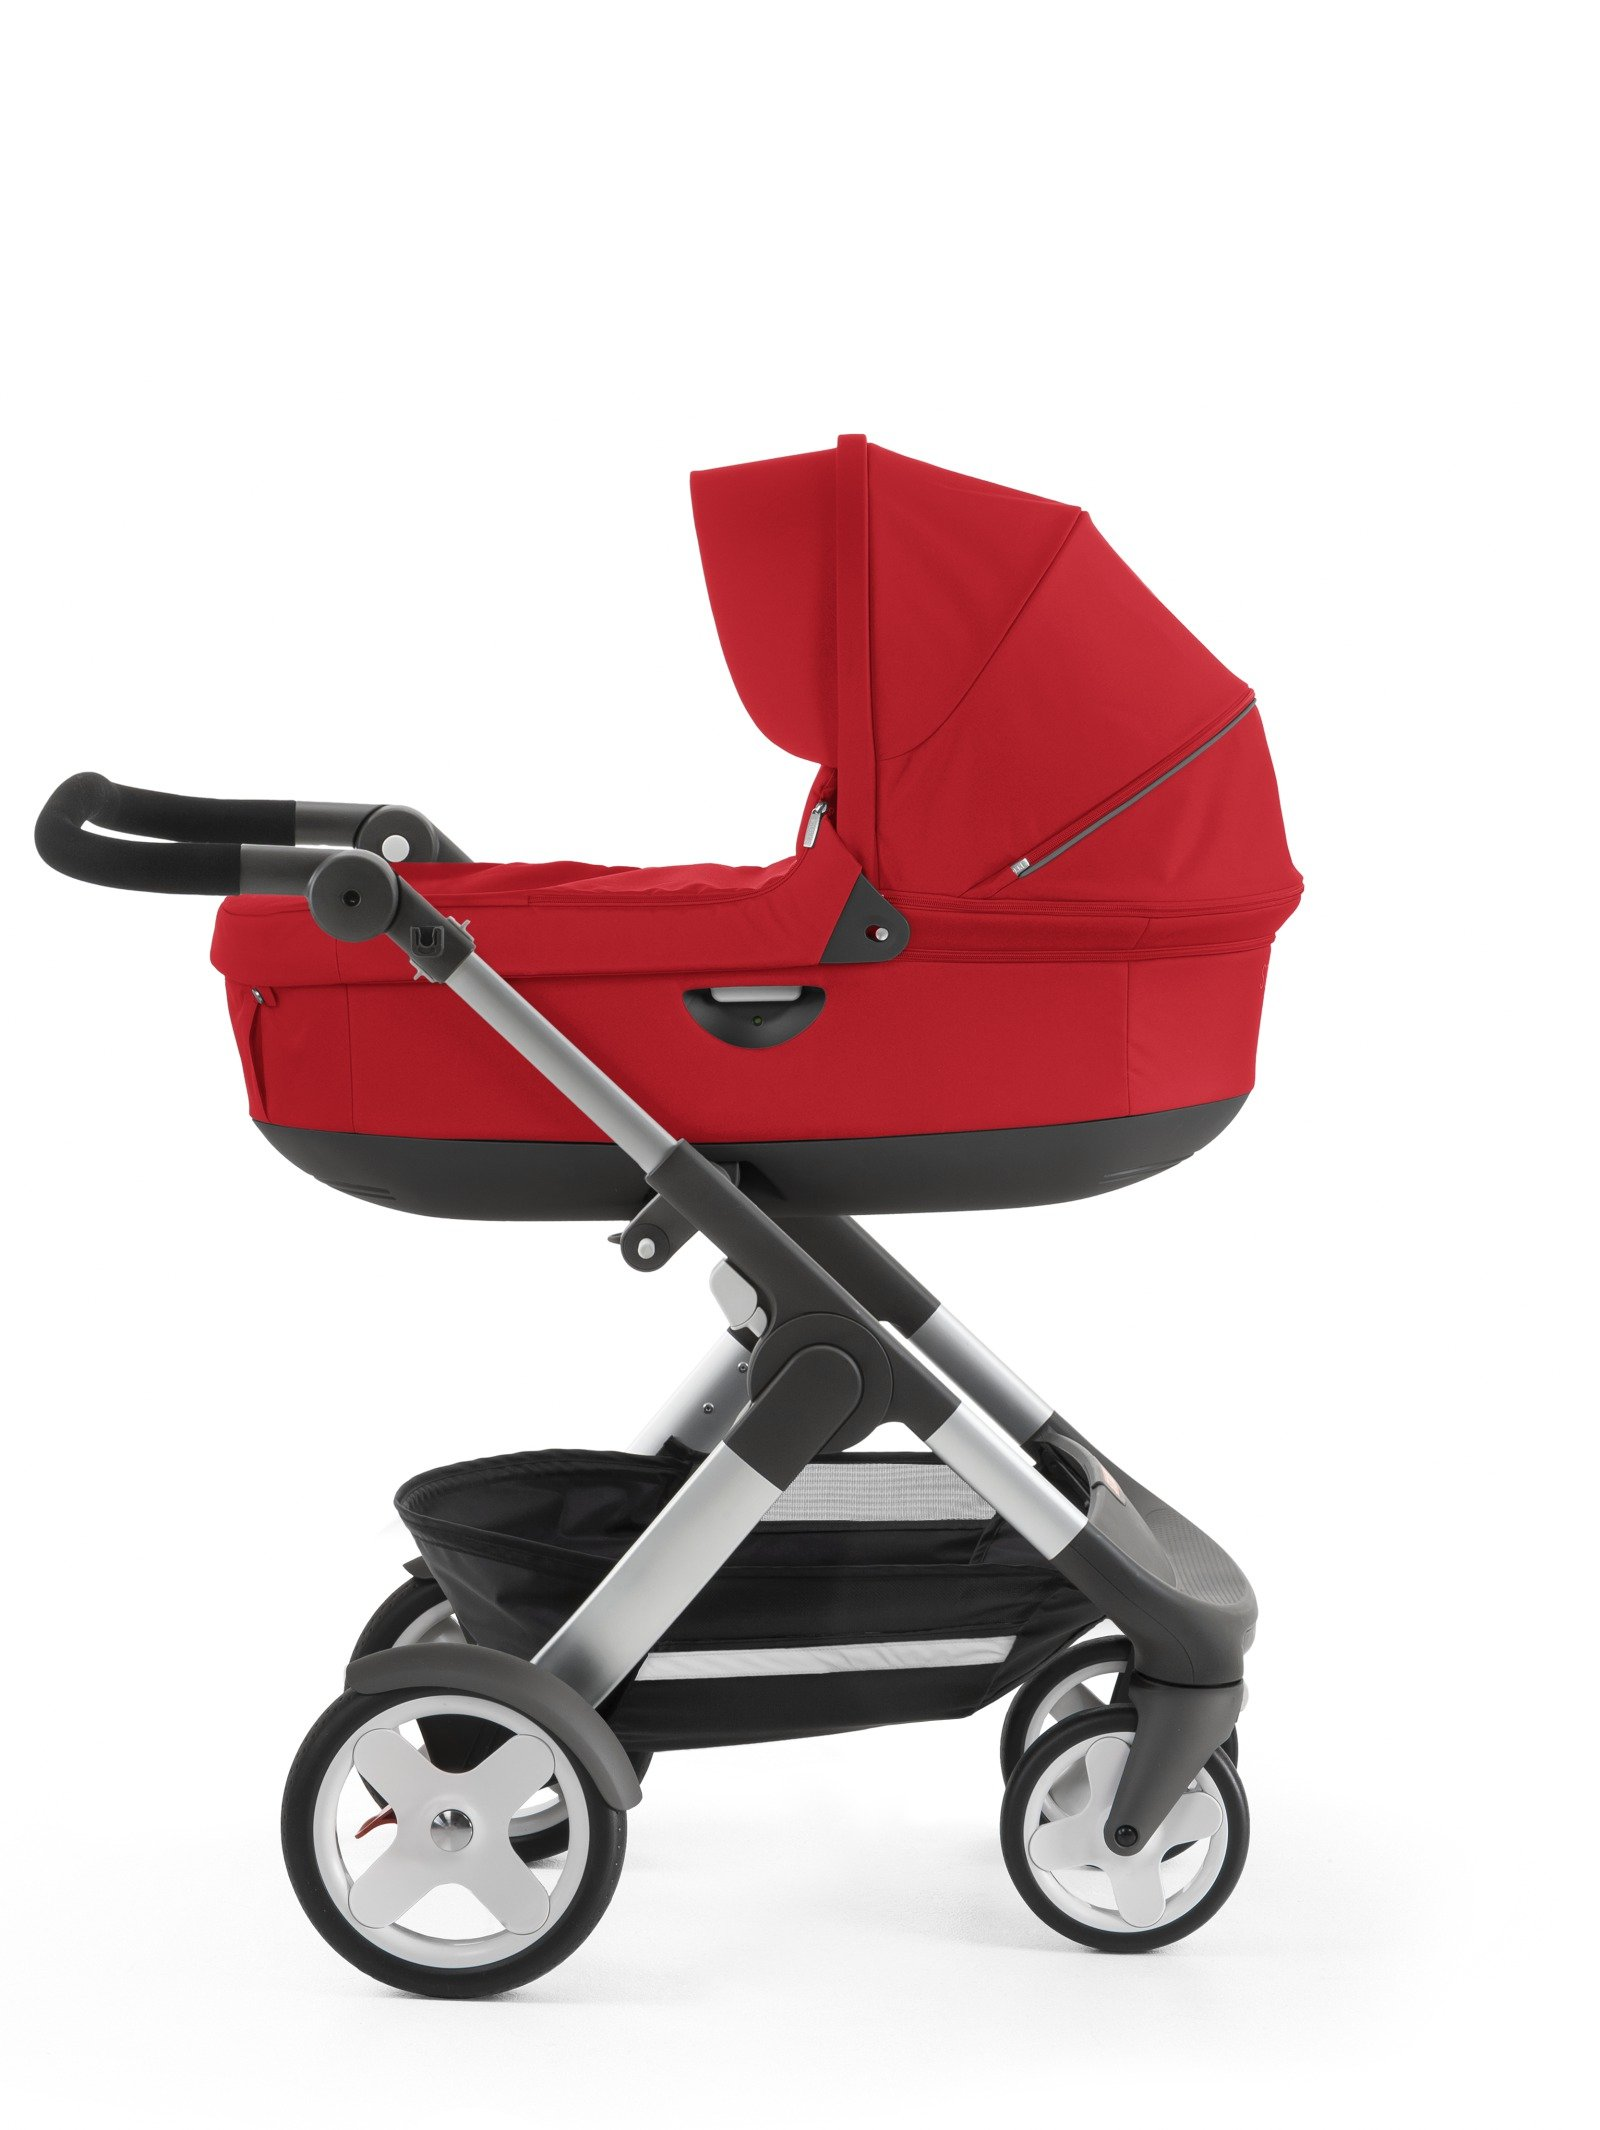 Stokke® Trailz™ with Stokke® Stroller Carry Cot, Red. Classic Wheels.